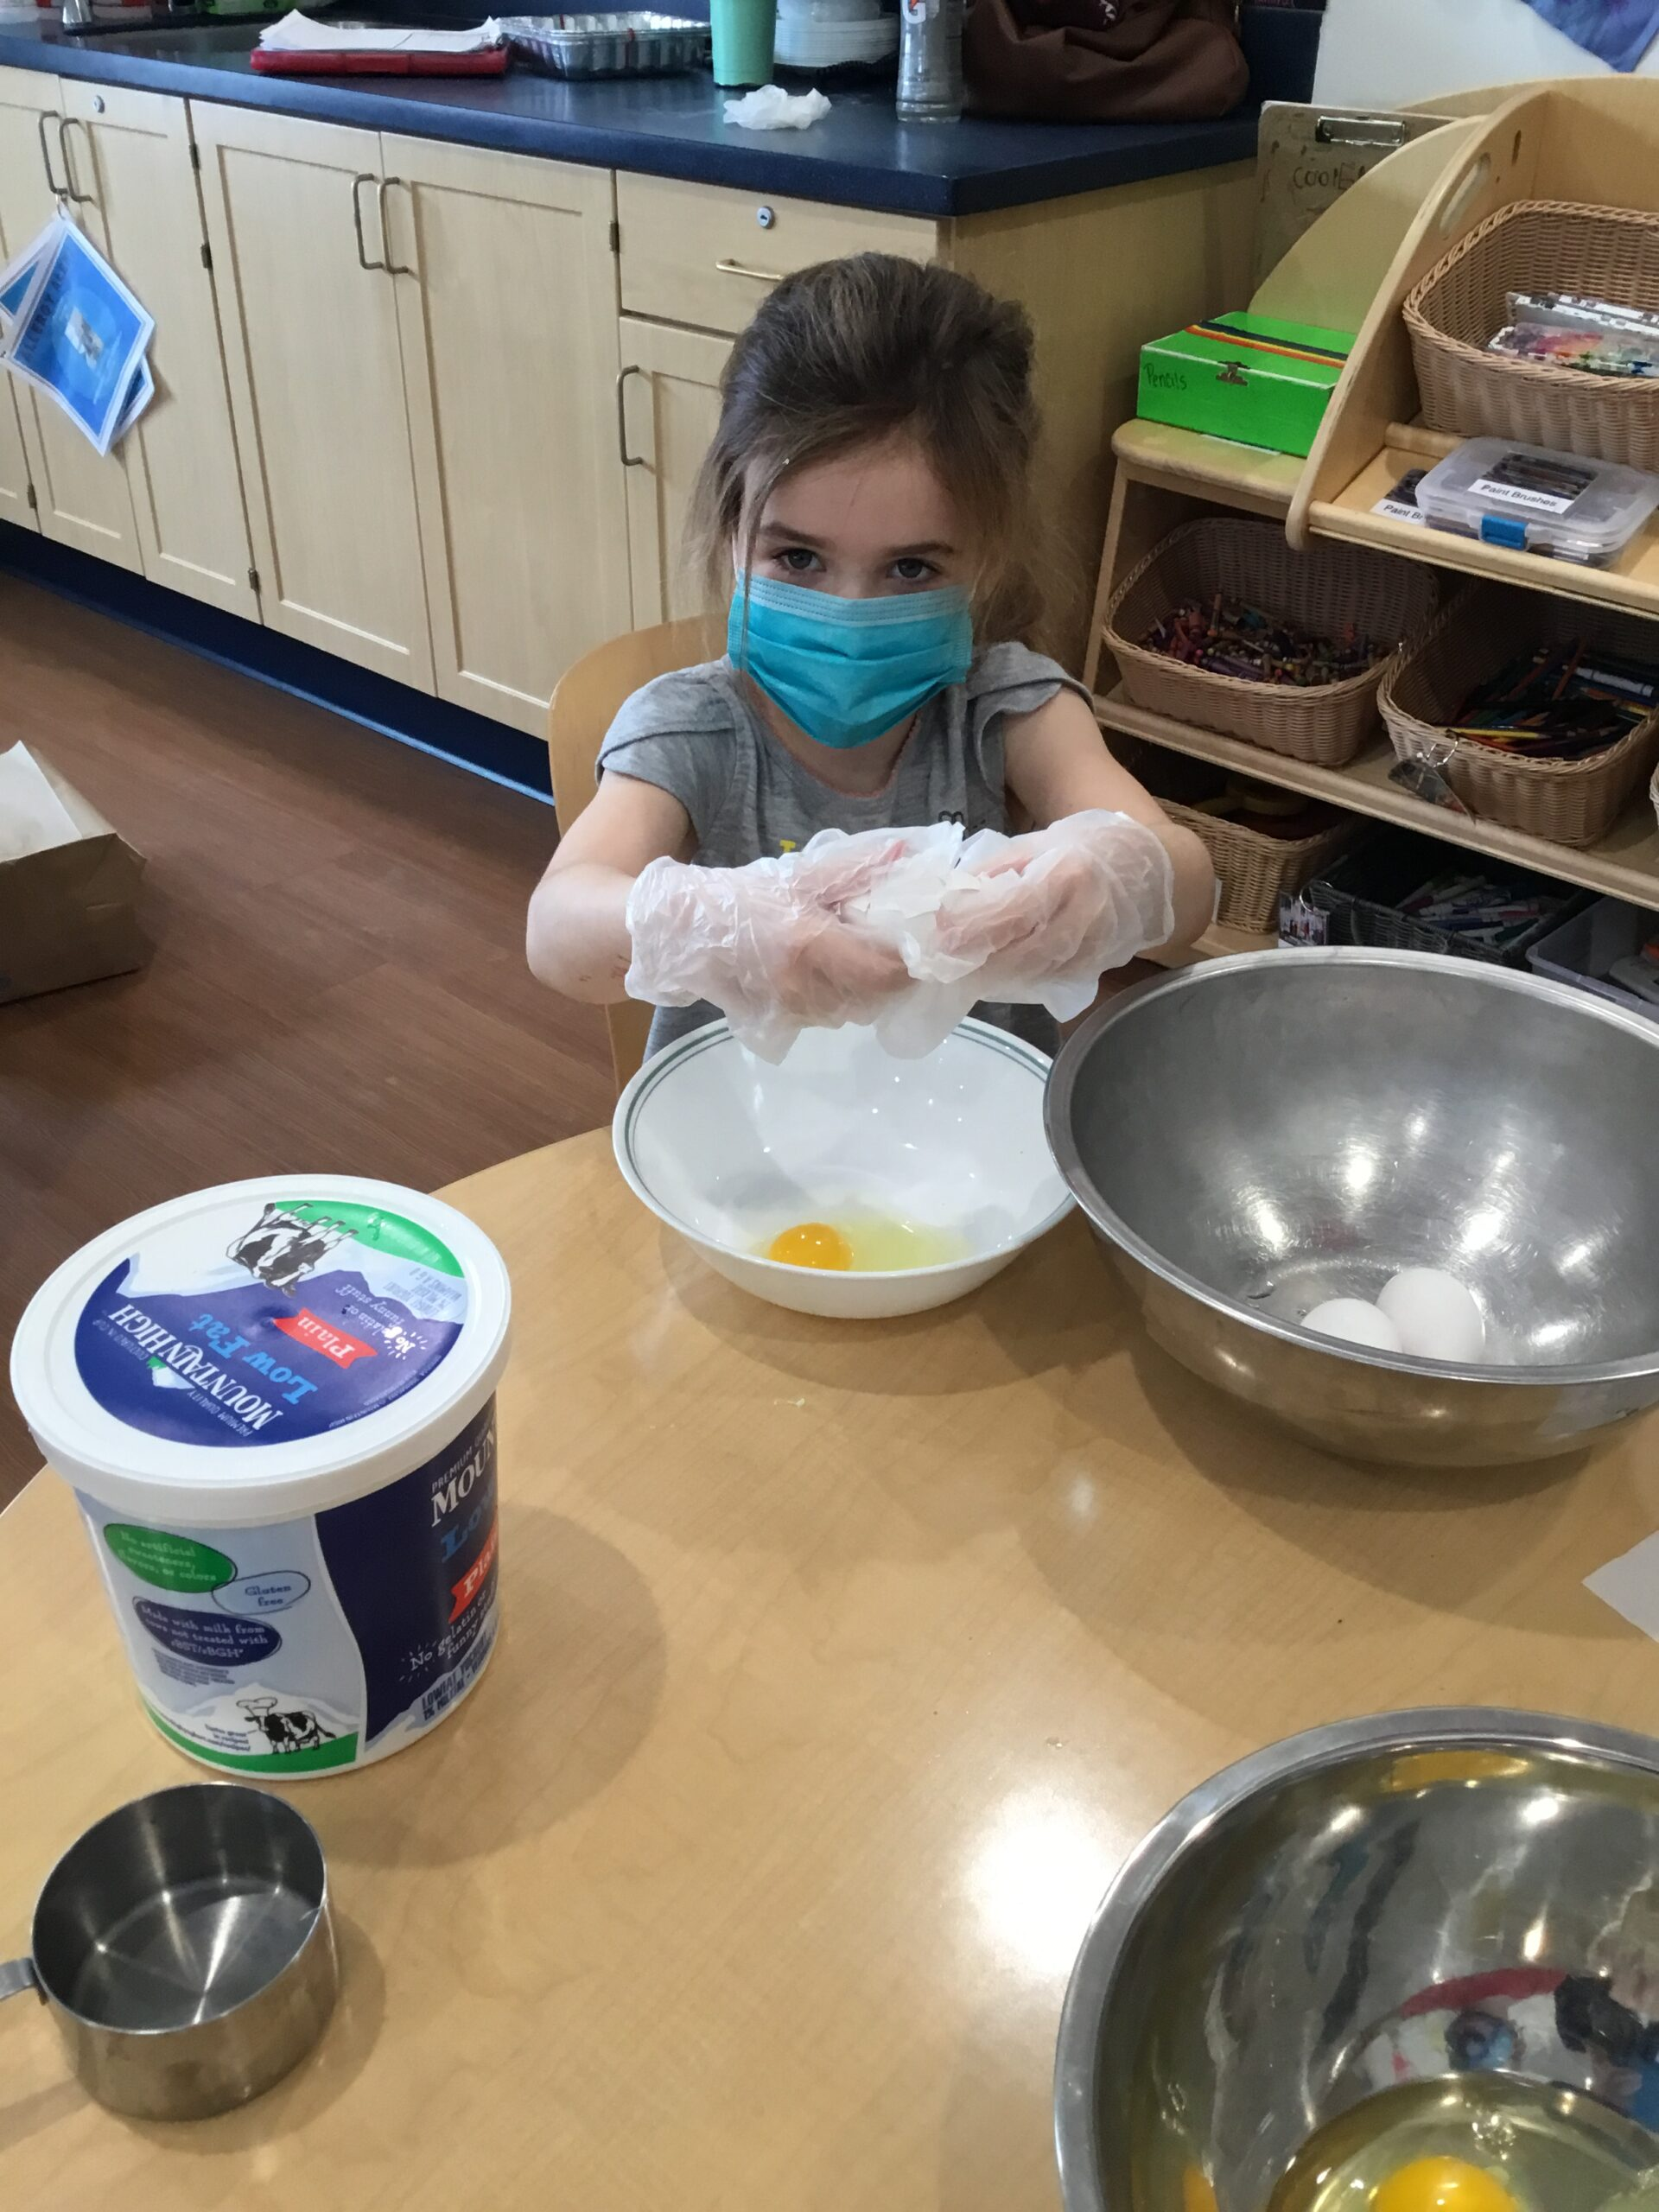 Get Those Kids Cooking by Shannon Lakey